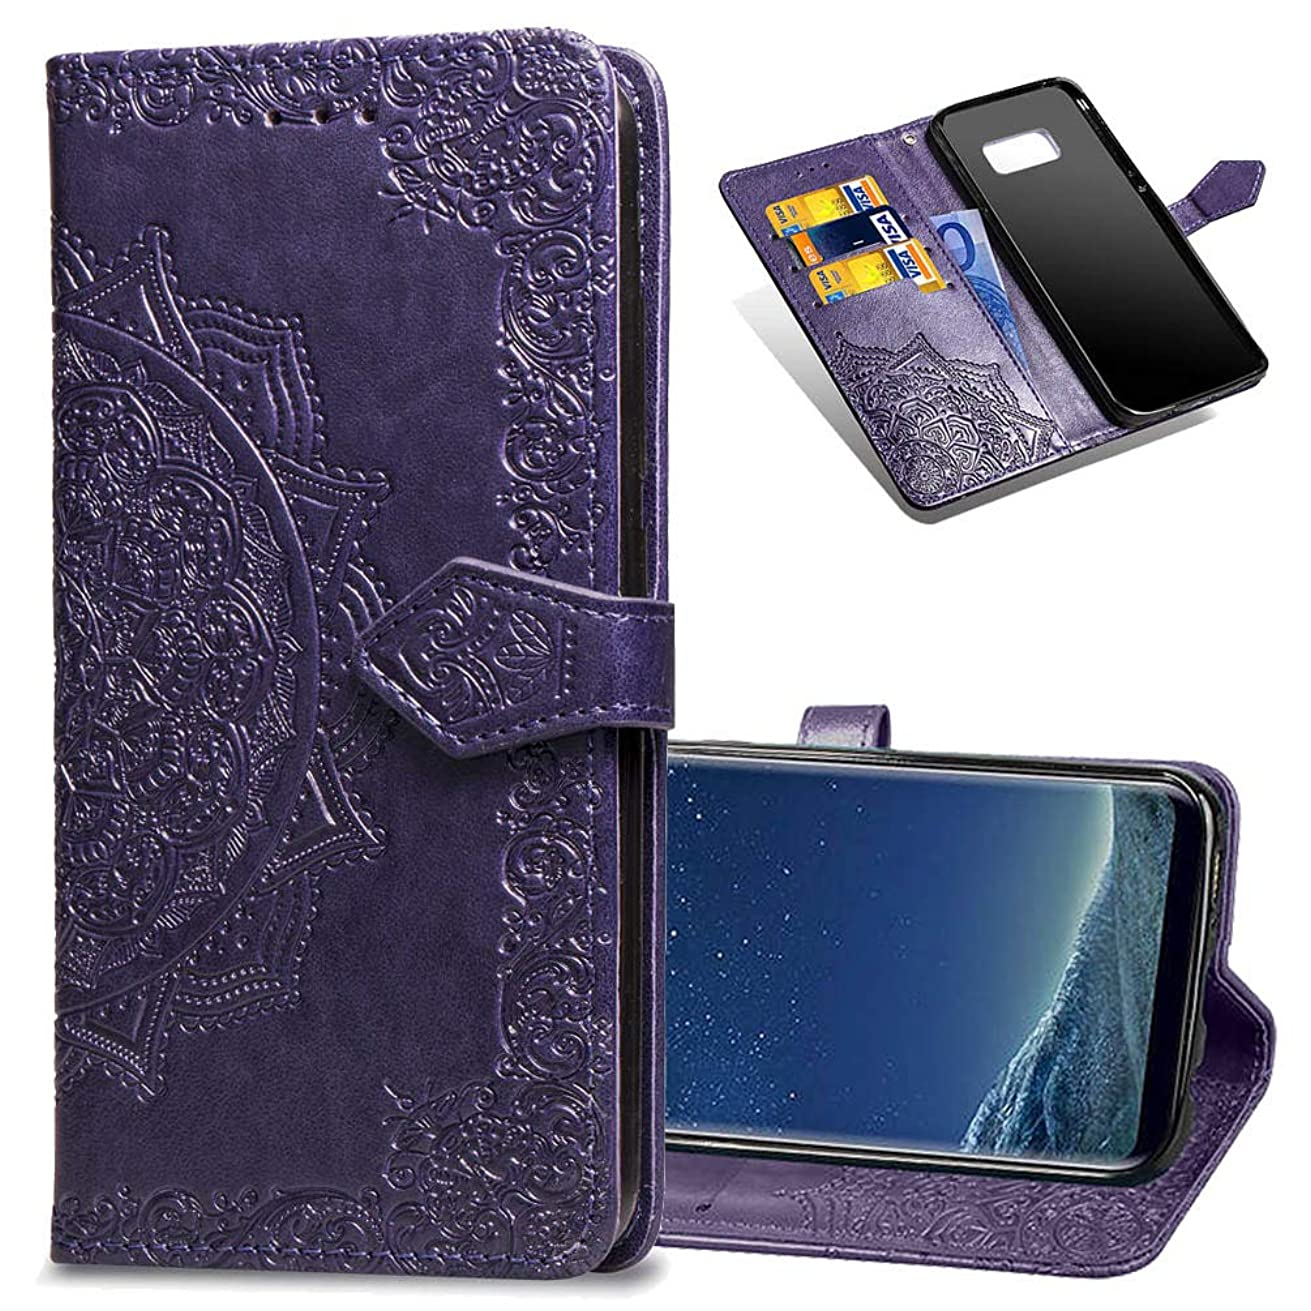 COTDINFORCA Samsung S8 Wallet Case, Slim Premium PU Flip Cover Mandala Embossed Full Body Protection with Card Holder Magnetic Closure for Samsung Galaxy S8 (2017). SD Mandala - Purple